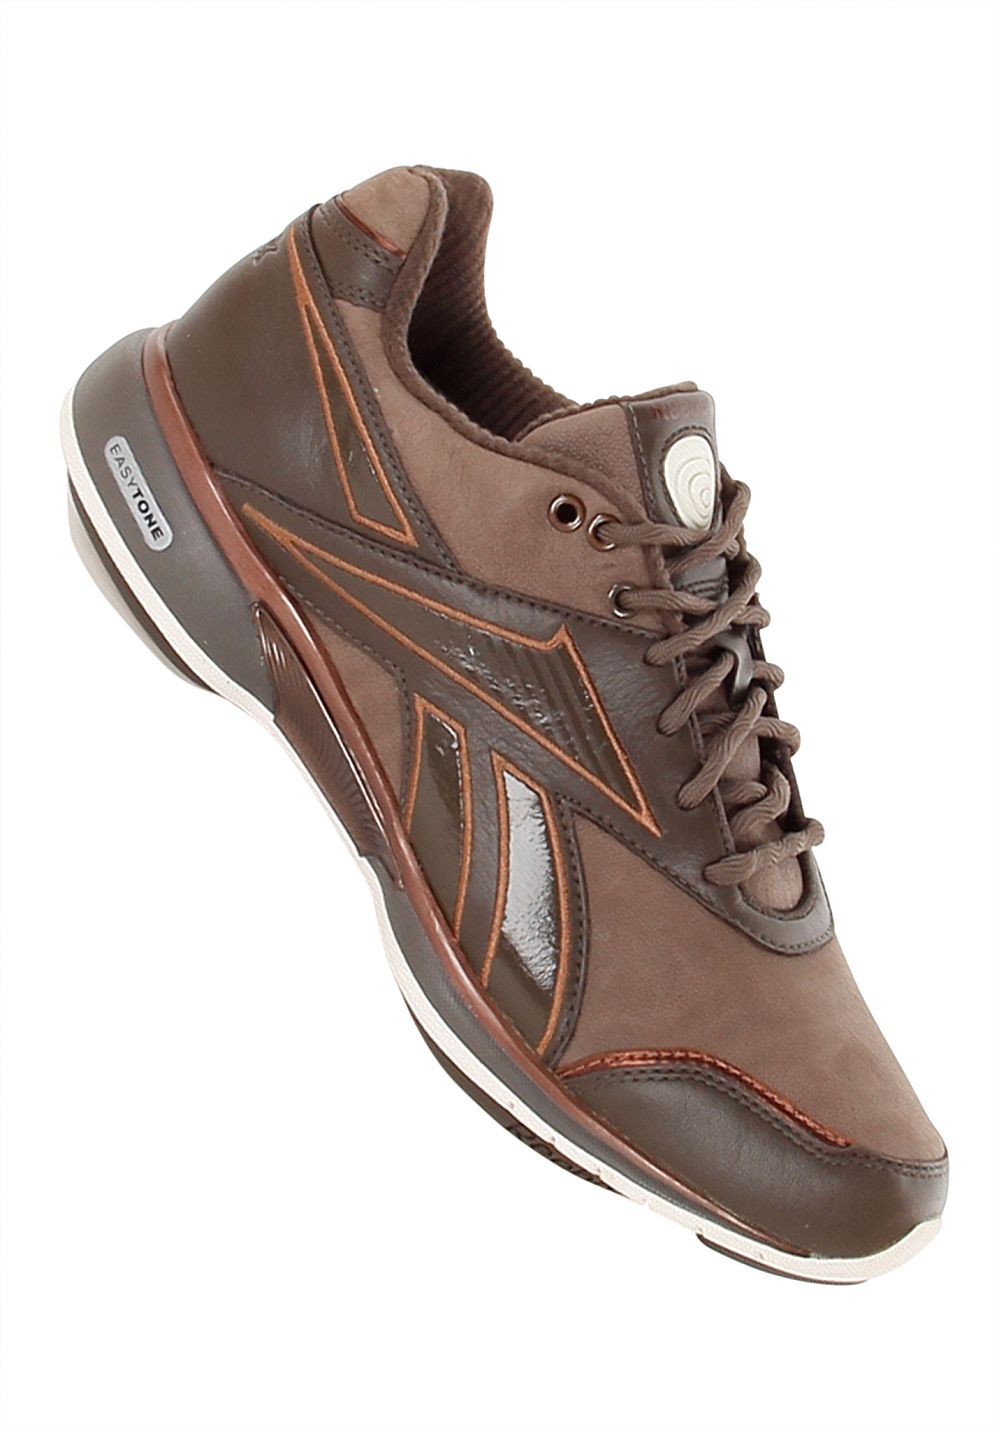 91cdc66cb5e3 Home · Reebok Easytone Reecommit - Sneakers for Women - Brown. Back to  Overview. 1  2  3. Previous